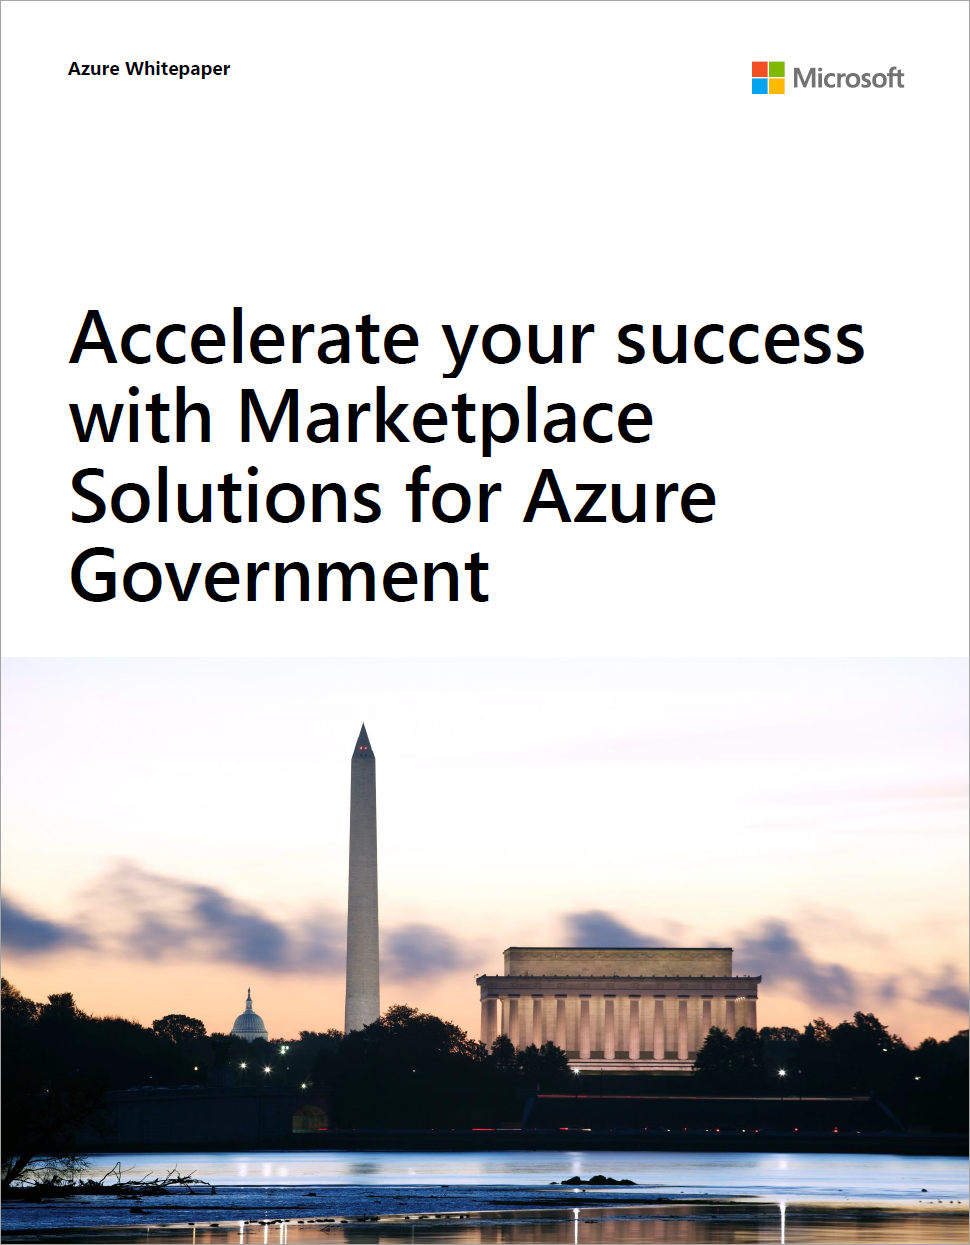 Marketplace Solutions for Azure Government